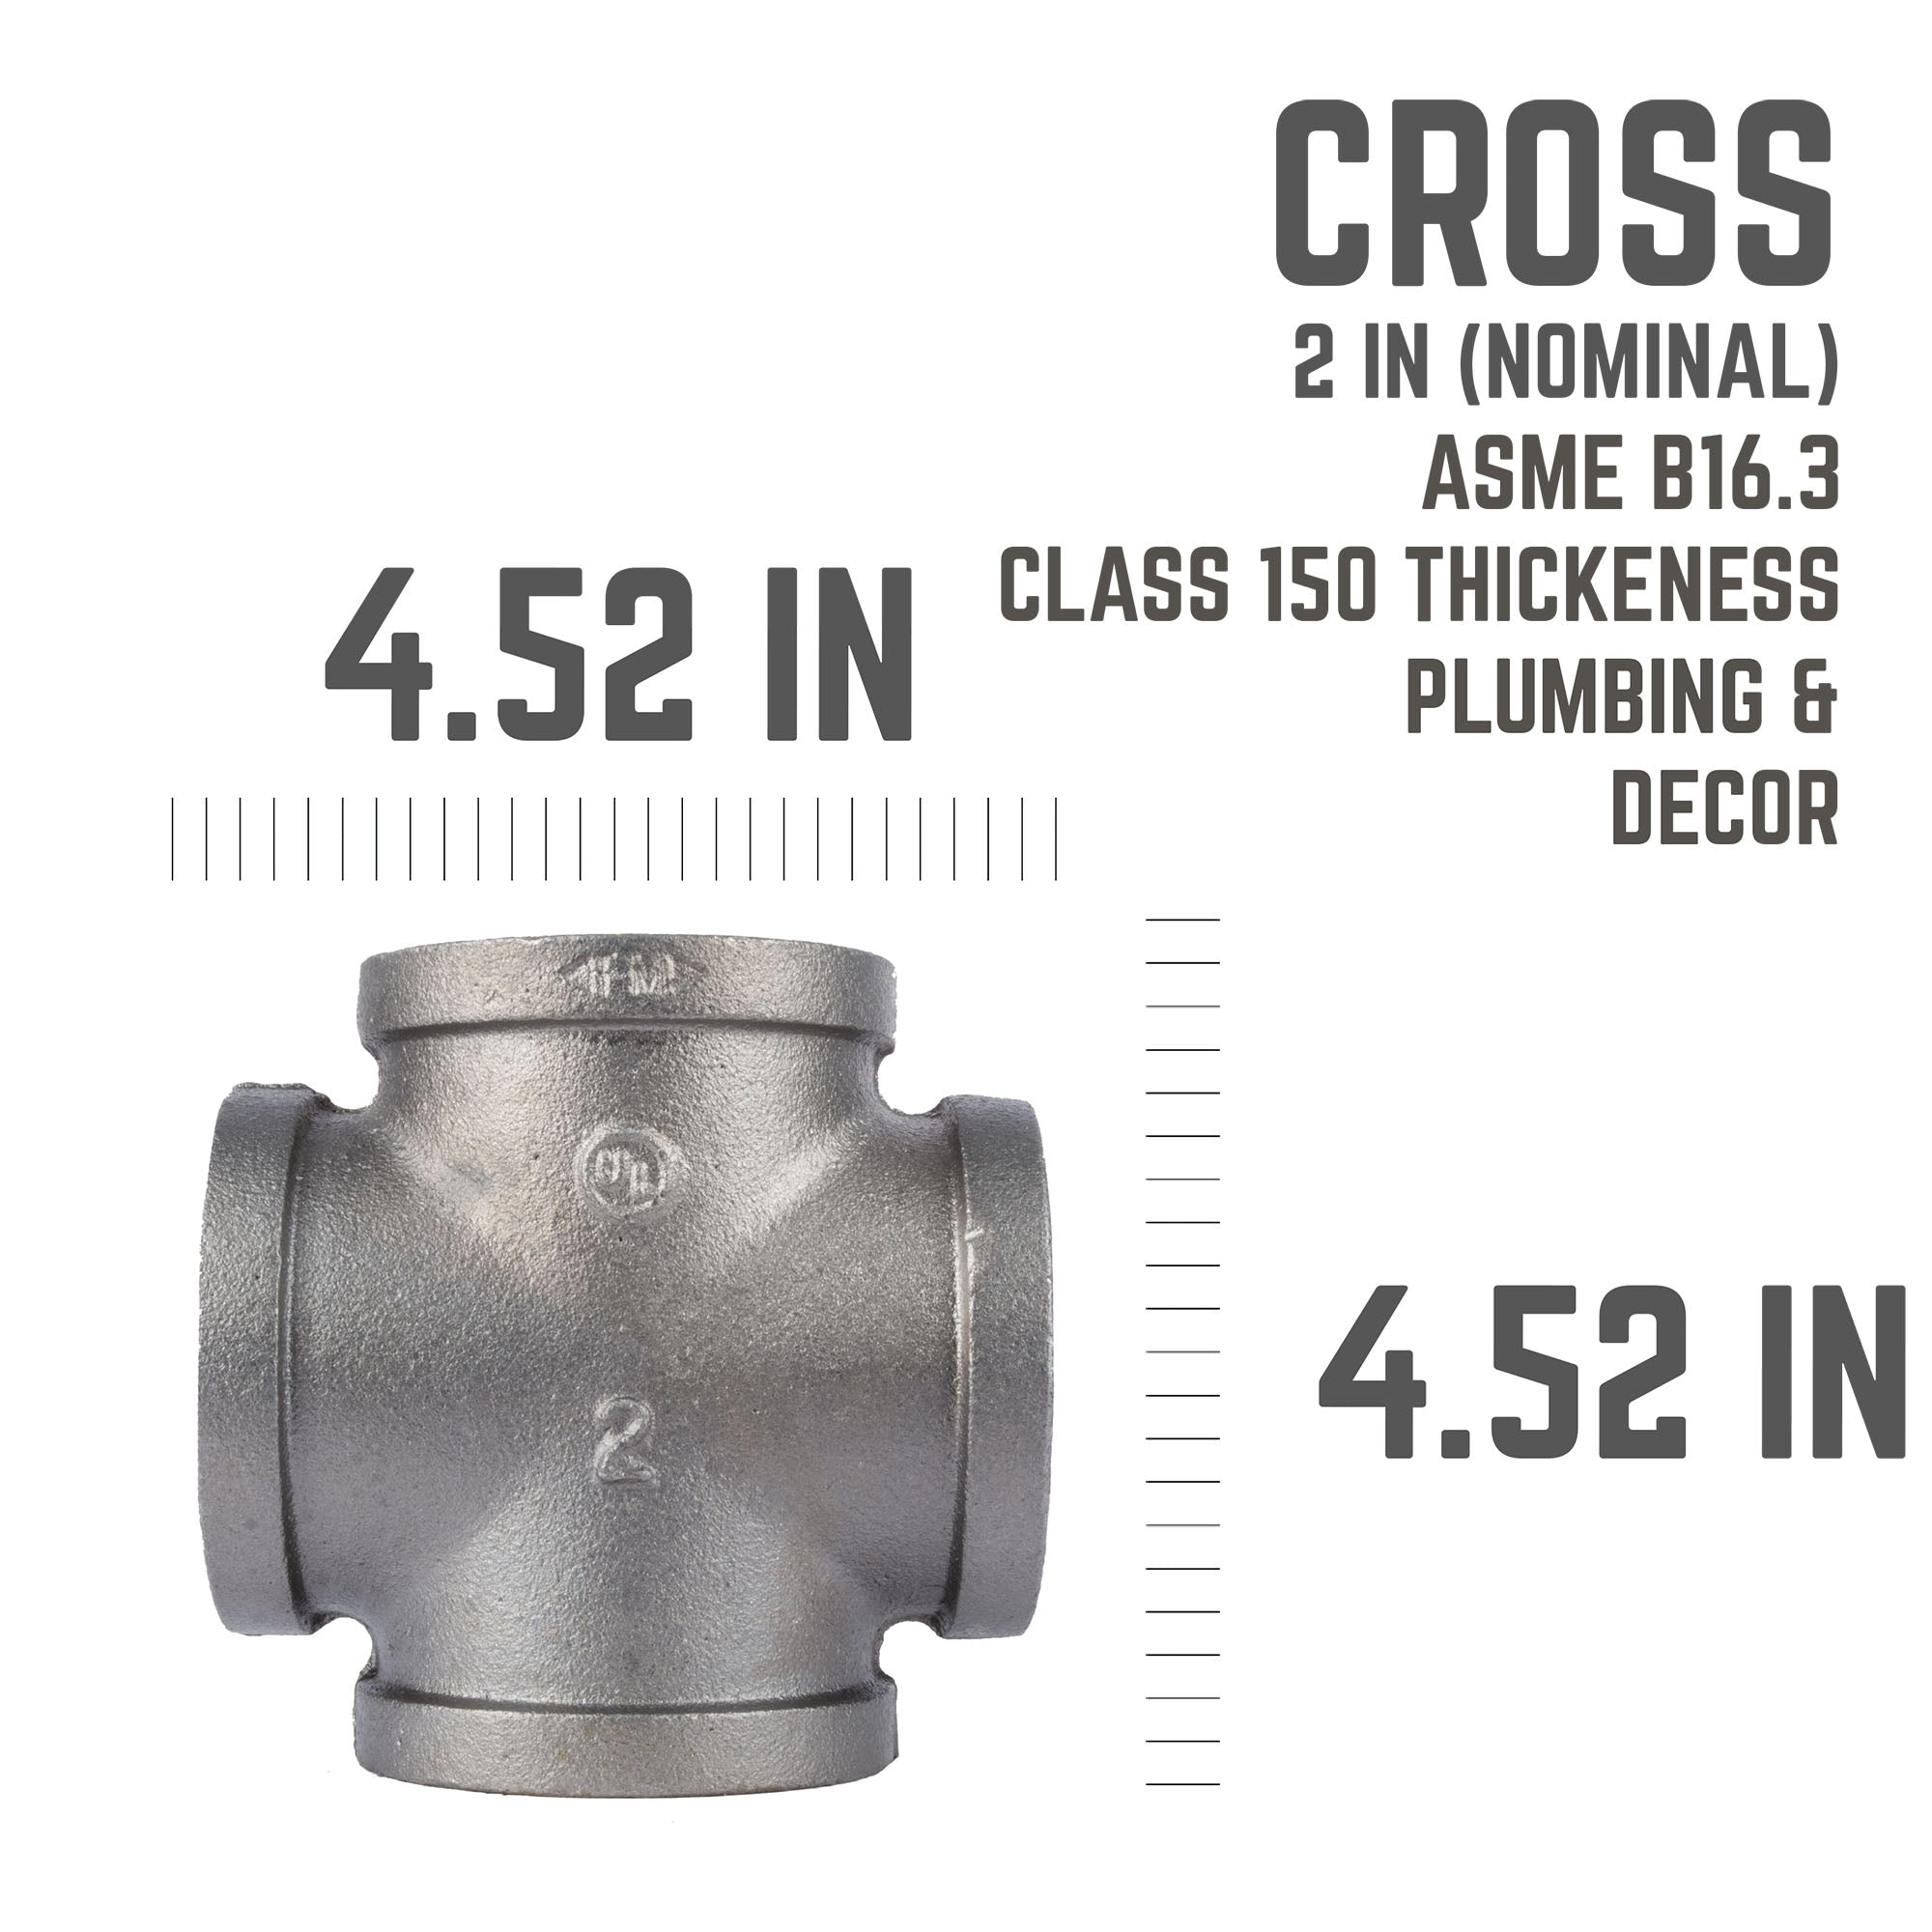 2 In Black Cross - Pipe Decor